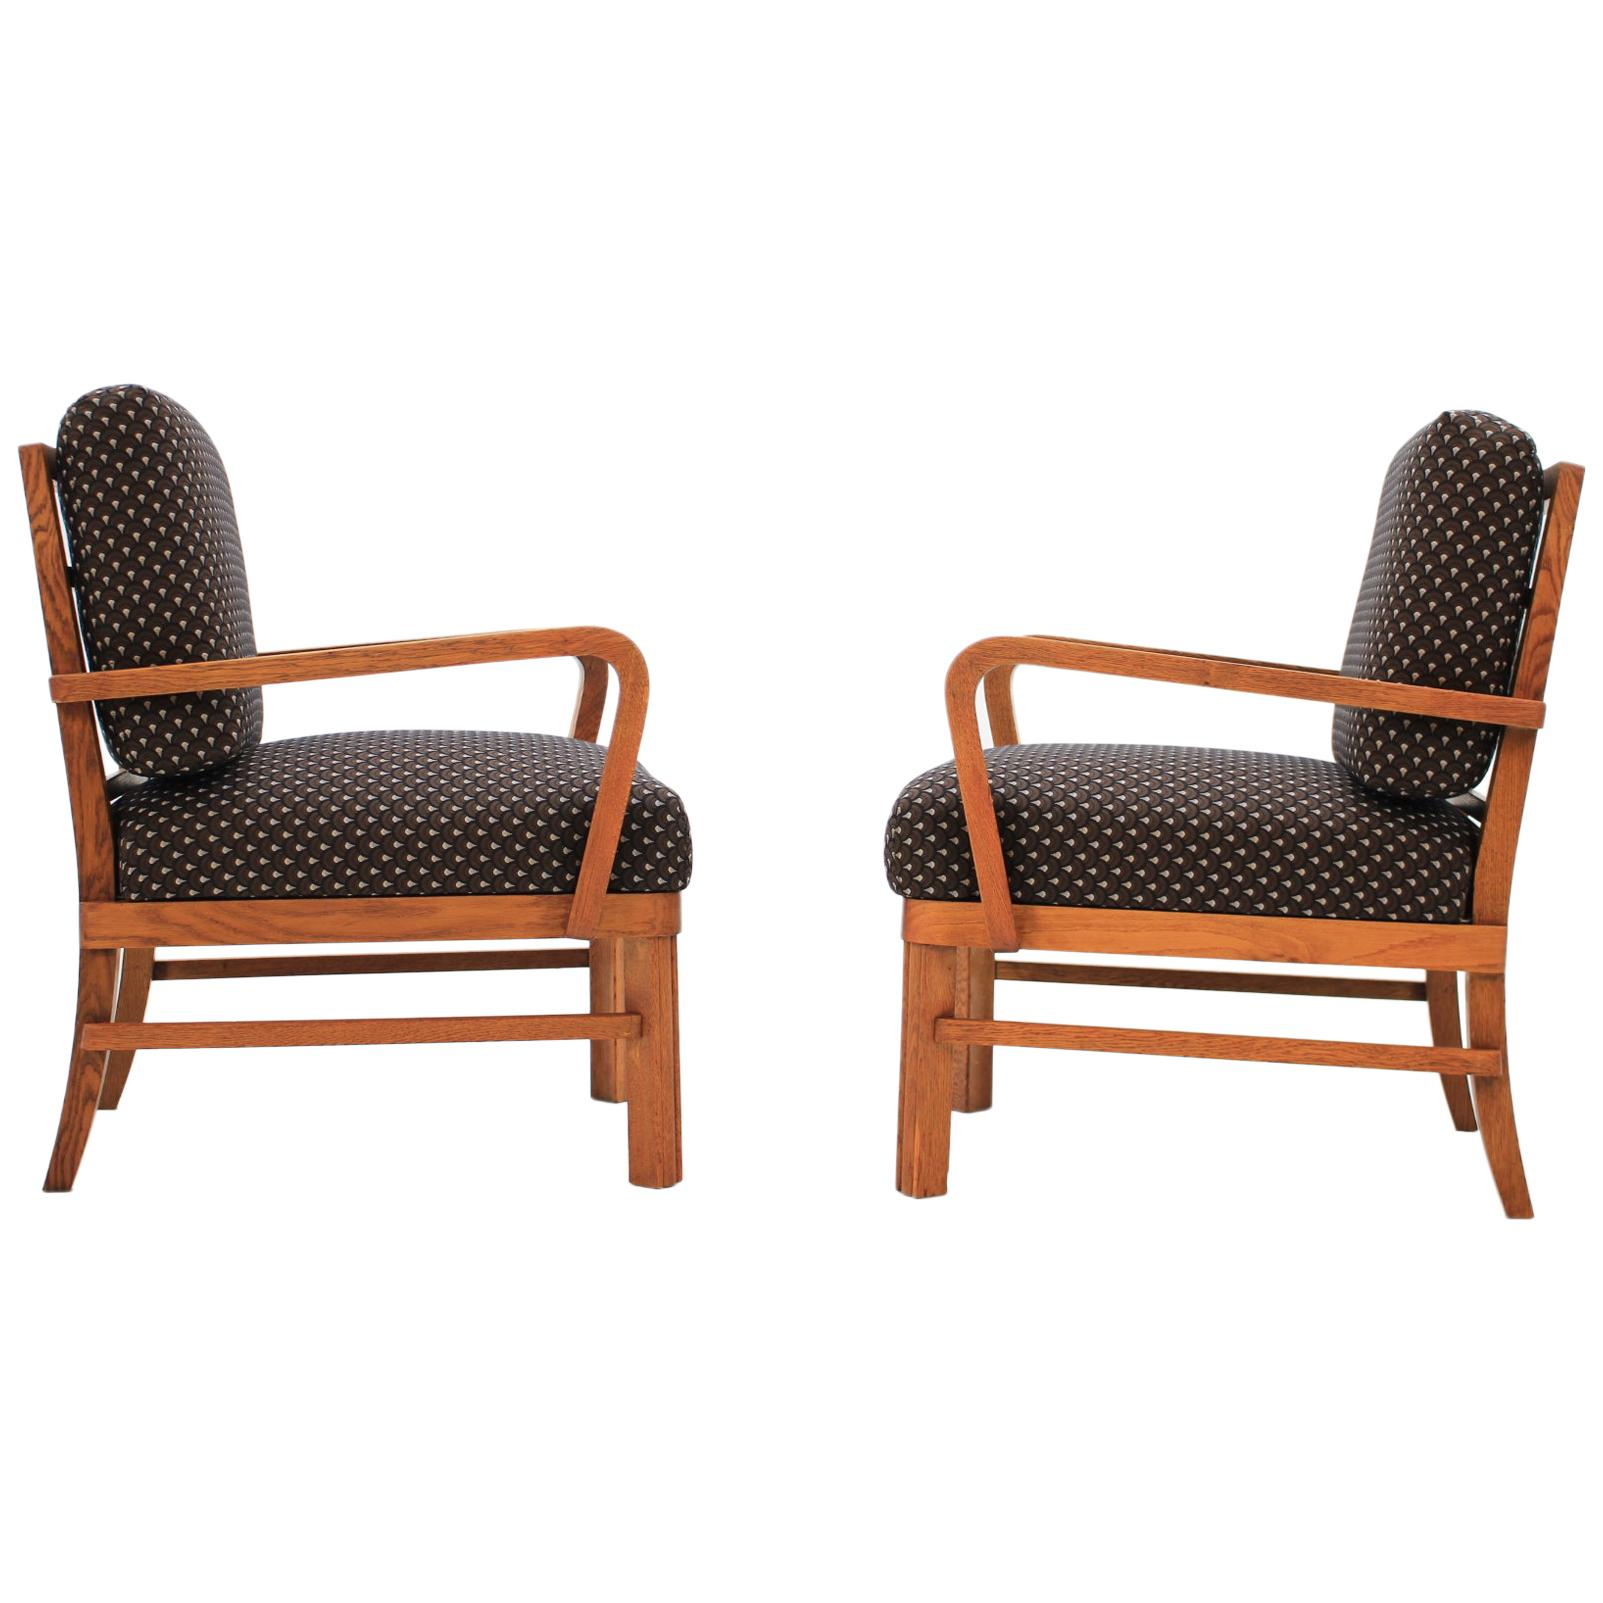 Pair of Restored Armchairs, 1950s